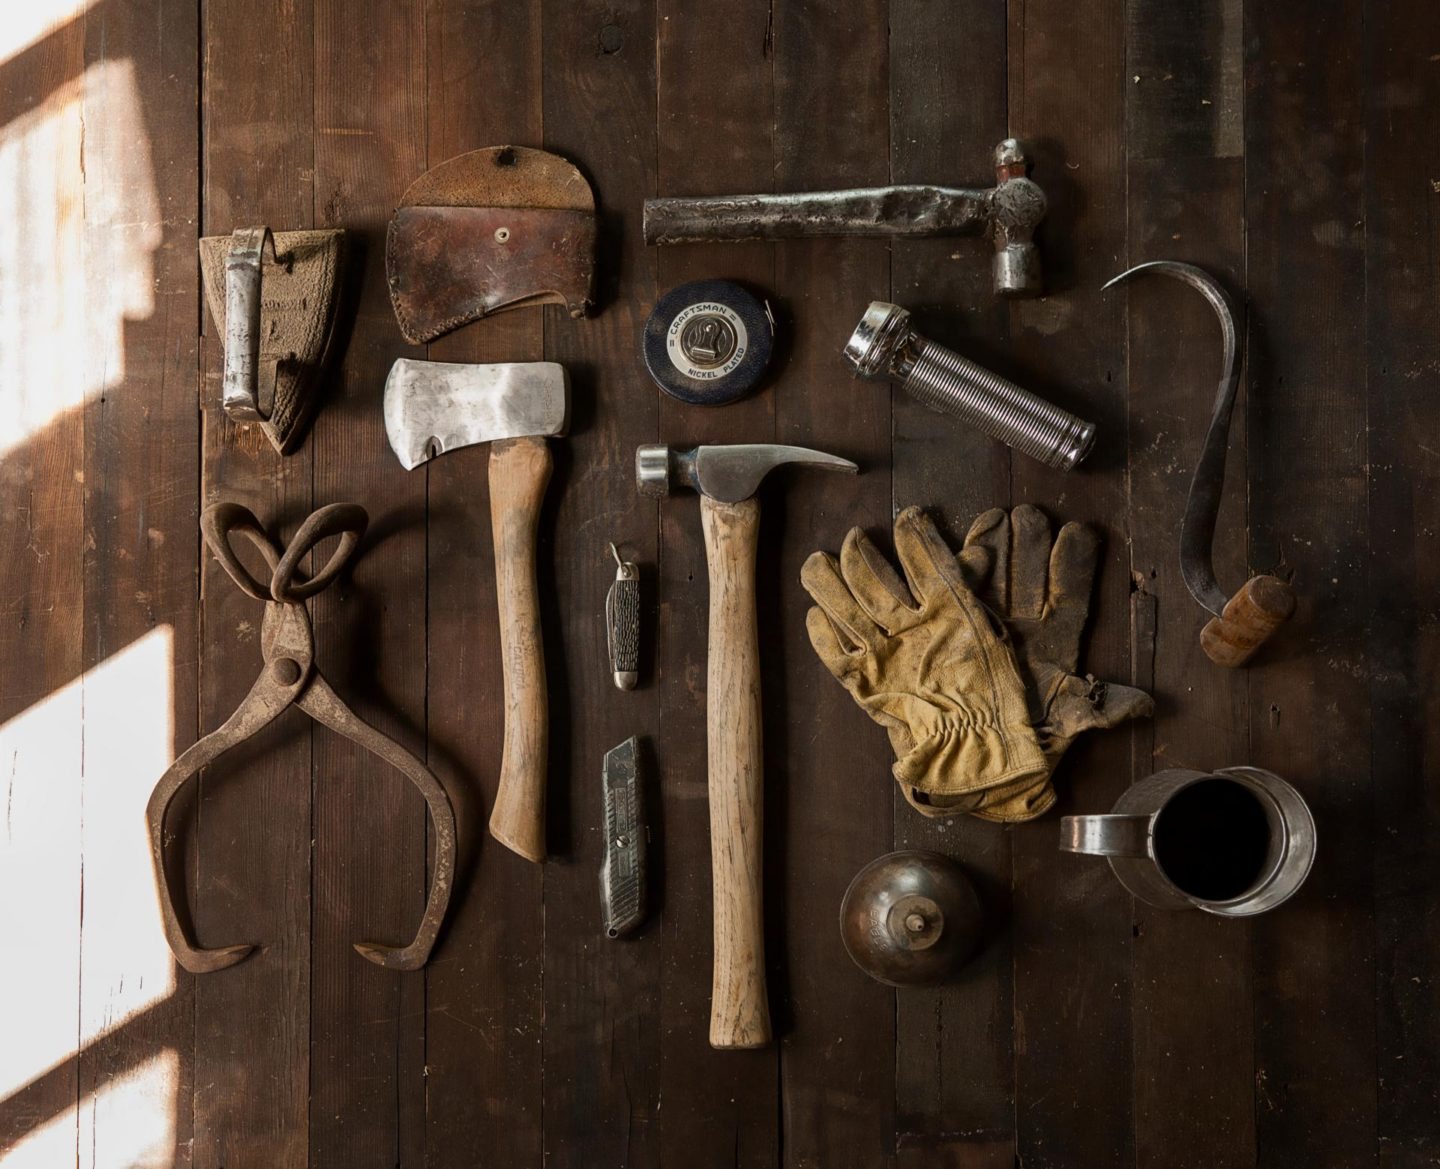 How to start a successful handyman business